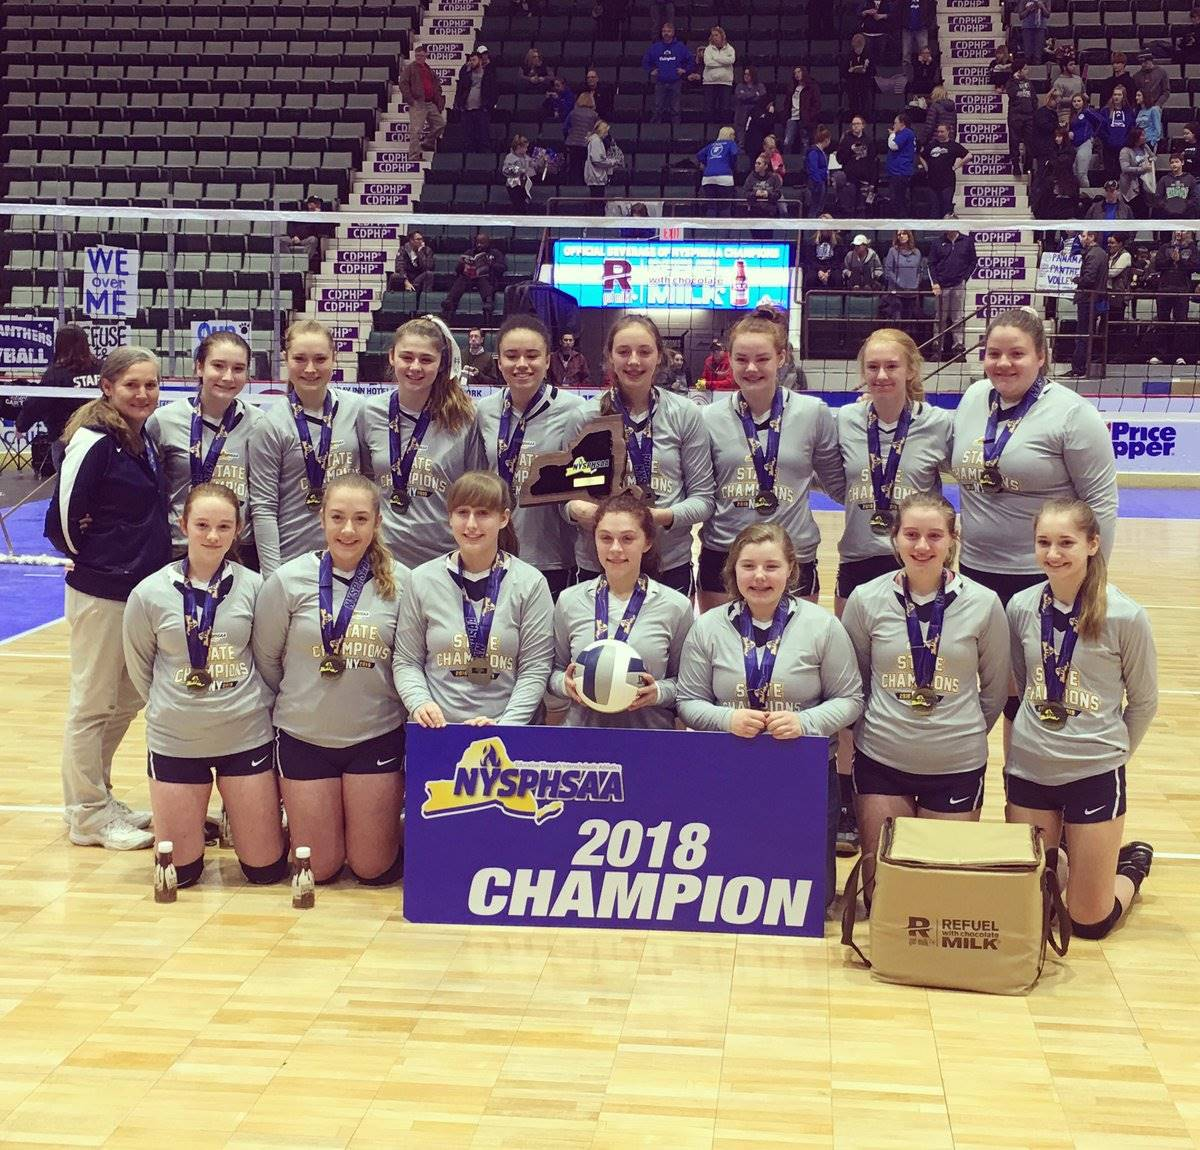 State Champ Girls Volleyball Team - 2018